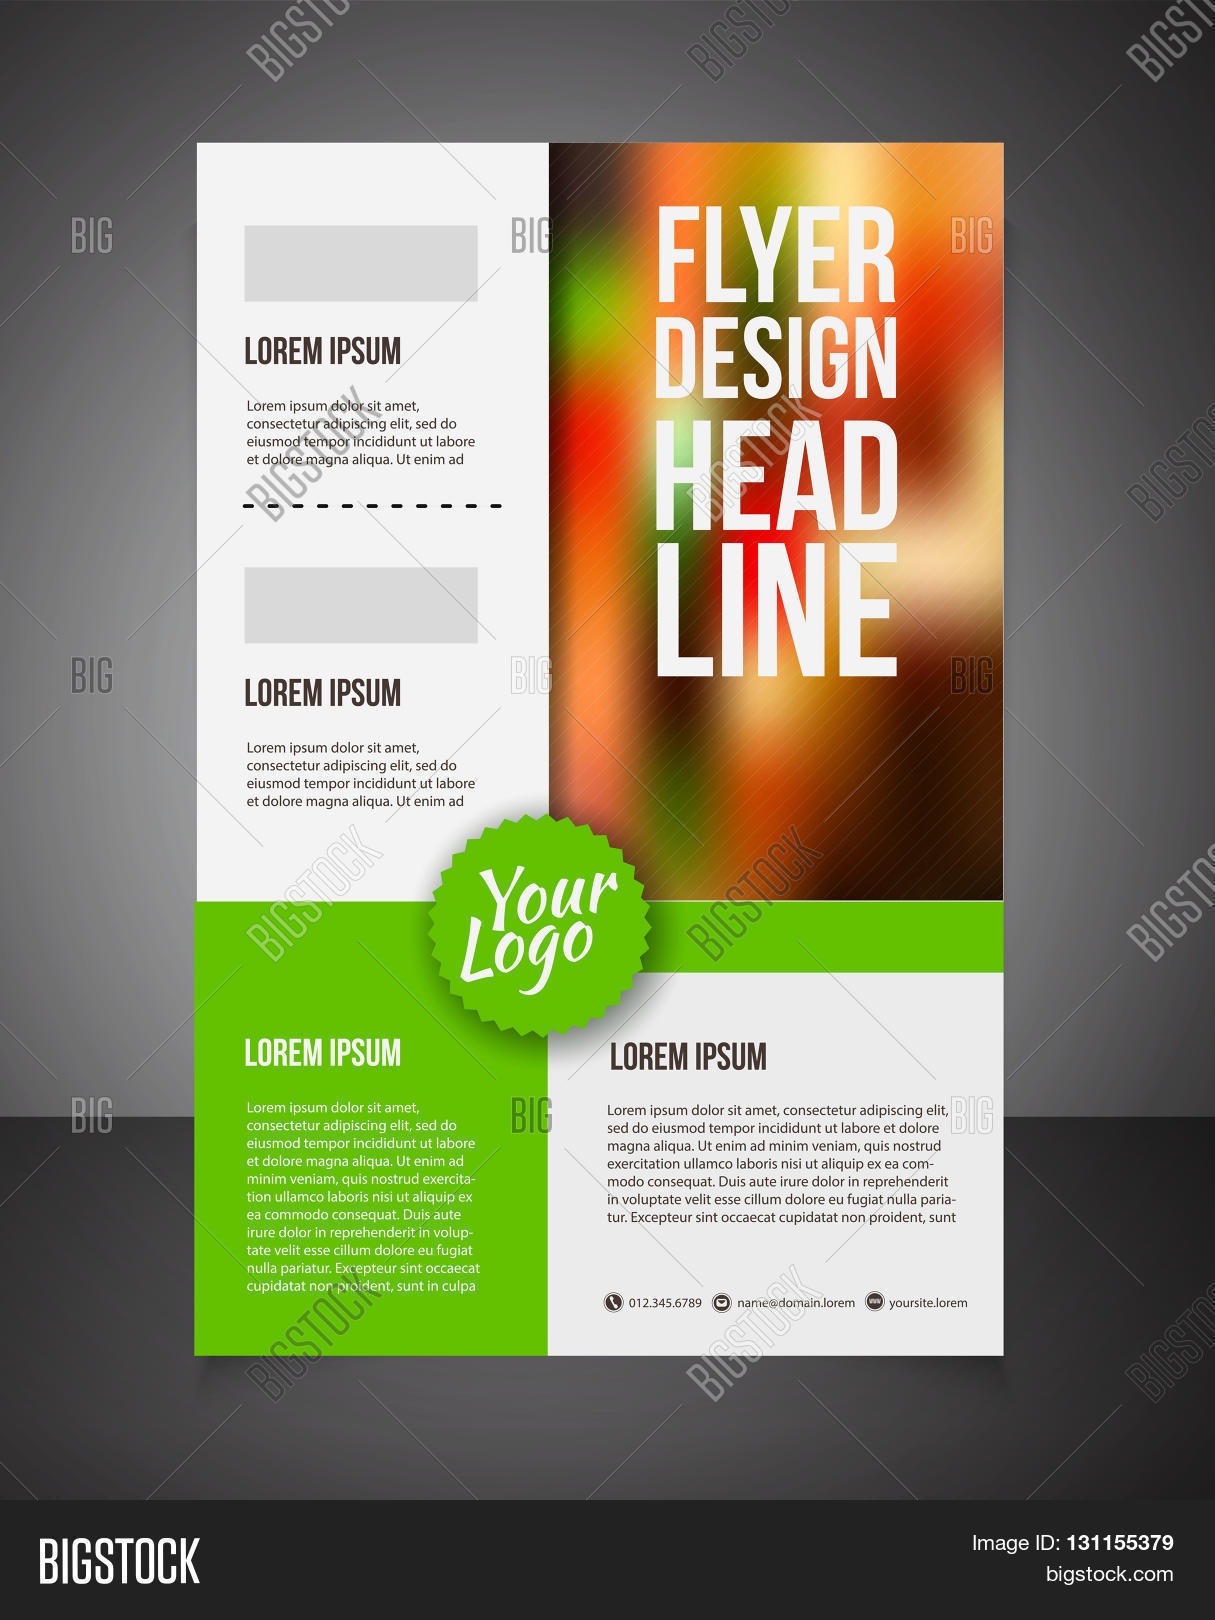 commercial brochure templates - business brochure vector photo free trial bigstock